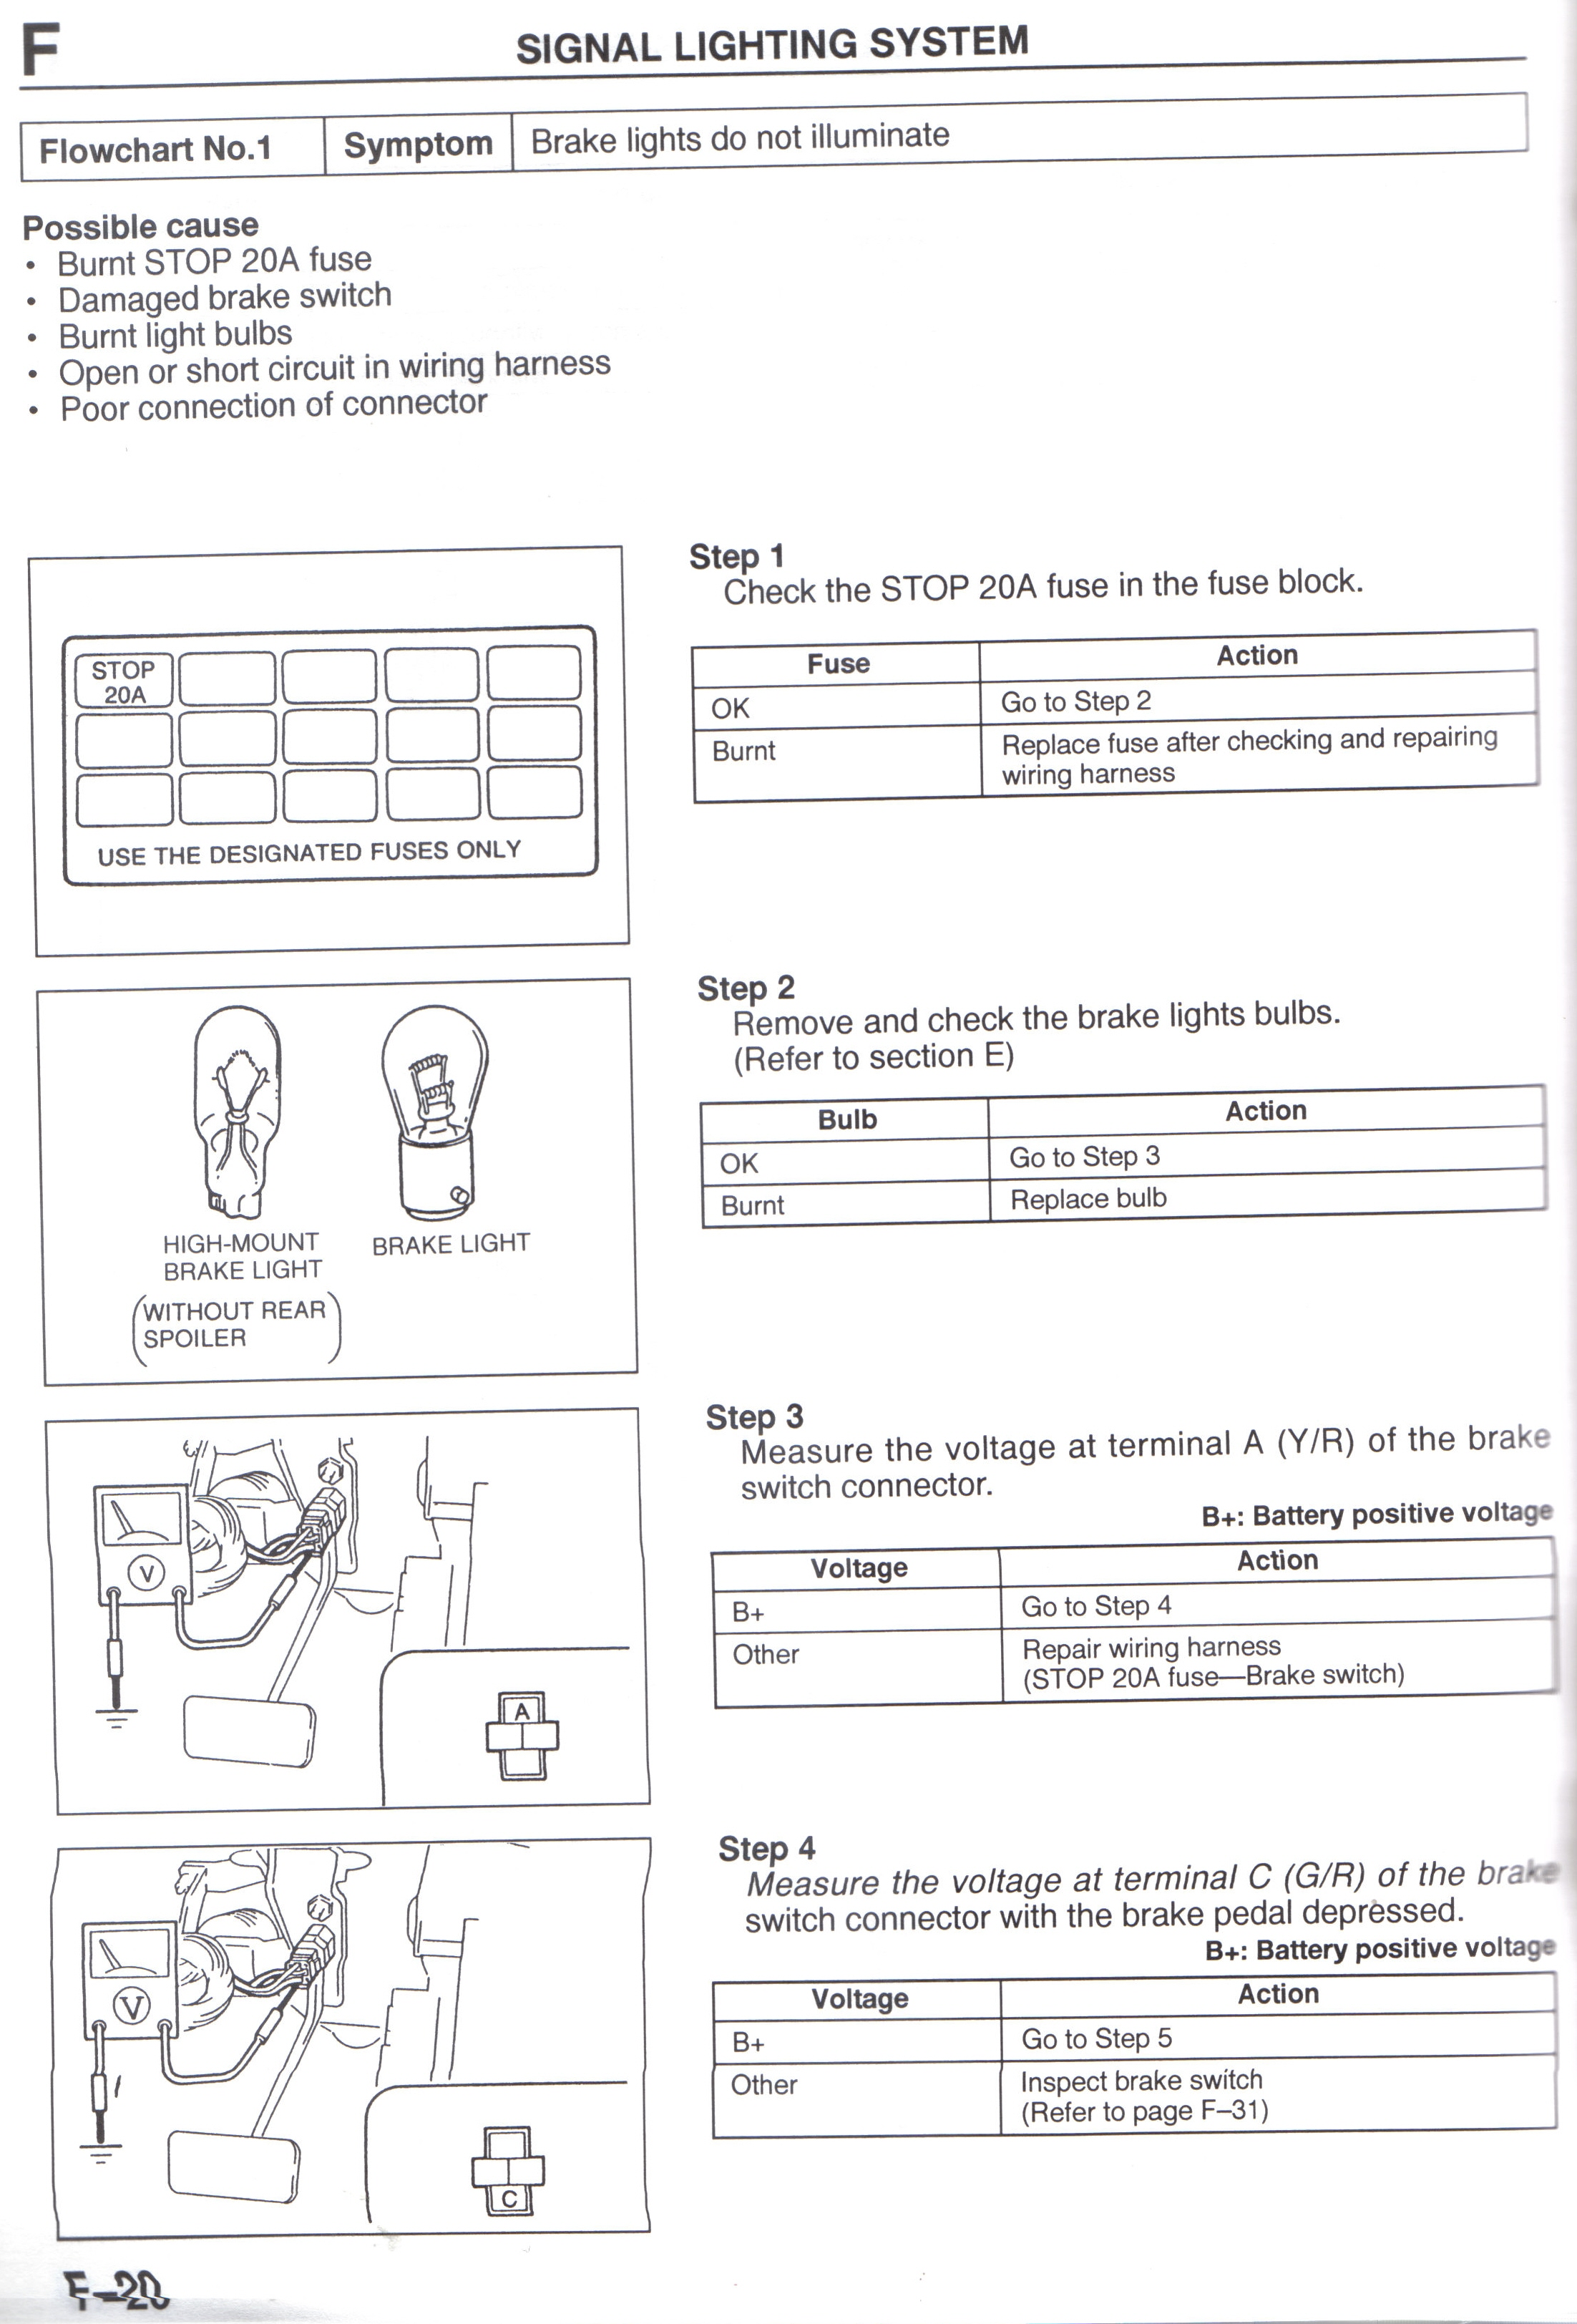 Us Mazda 626 Mx 6 Work Shop Manuals Scans 1995 Wsm Mx6 Wiring Harness F 20 Brakeswitch 1364kb Aug 24 2014 055915 Am